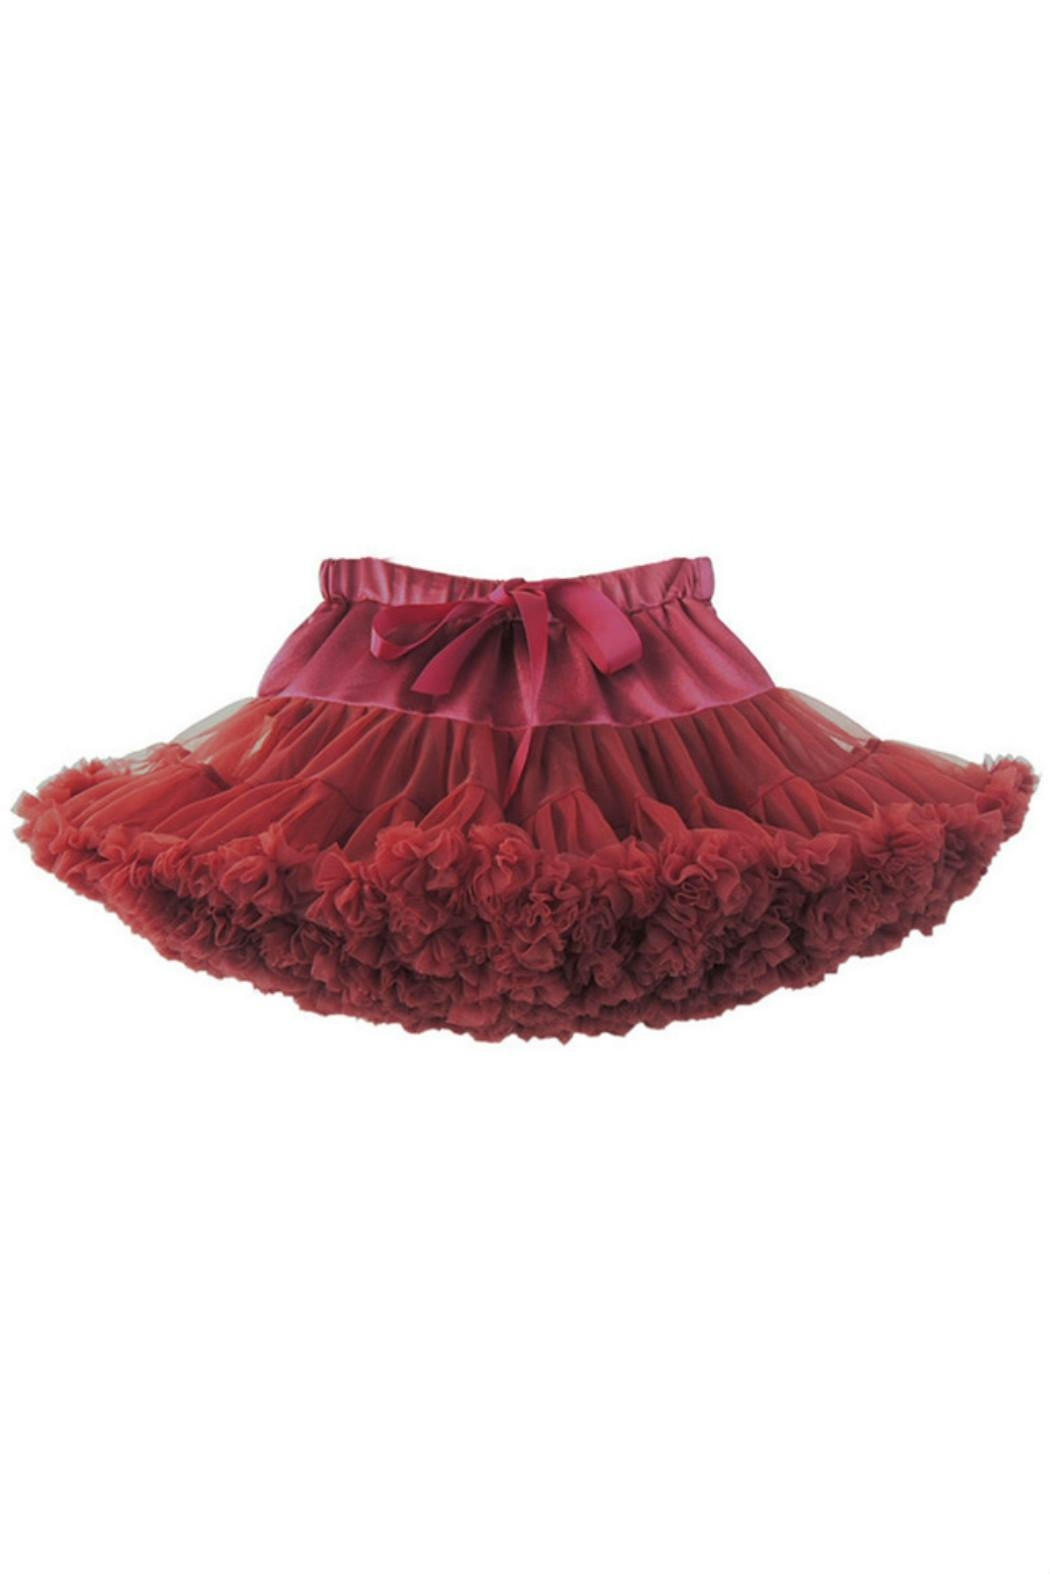 LIL MISS DRESS UP Fluffy Premium Pettiskirt - Front Cropped Image